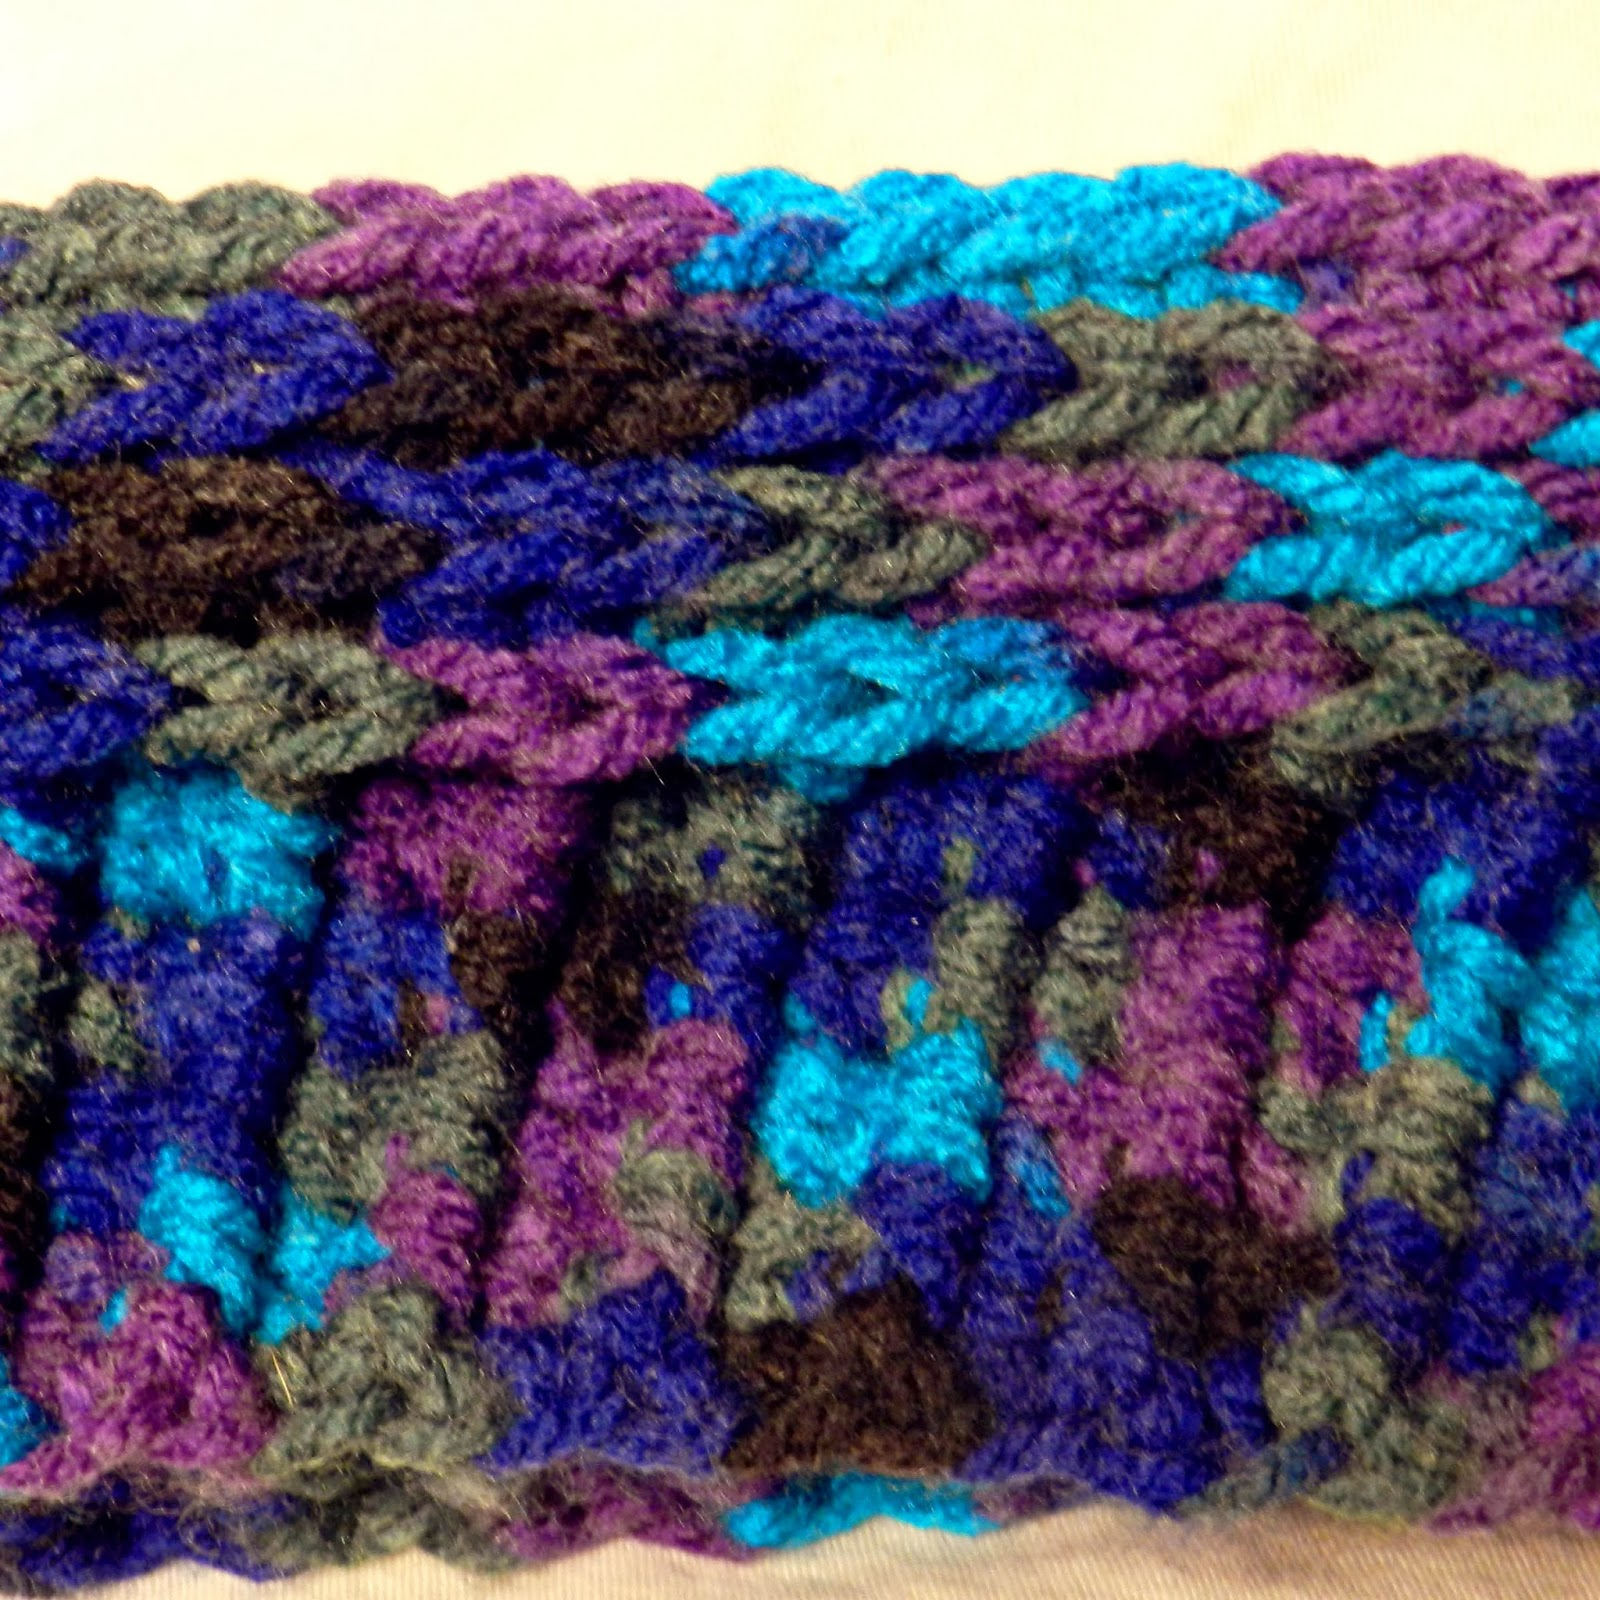 Crocheting In Third Loop : If youre looking for a fun hat to practice this stitch, check out our ...